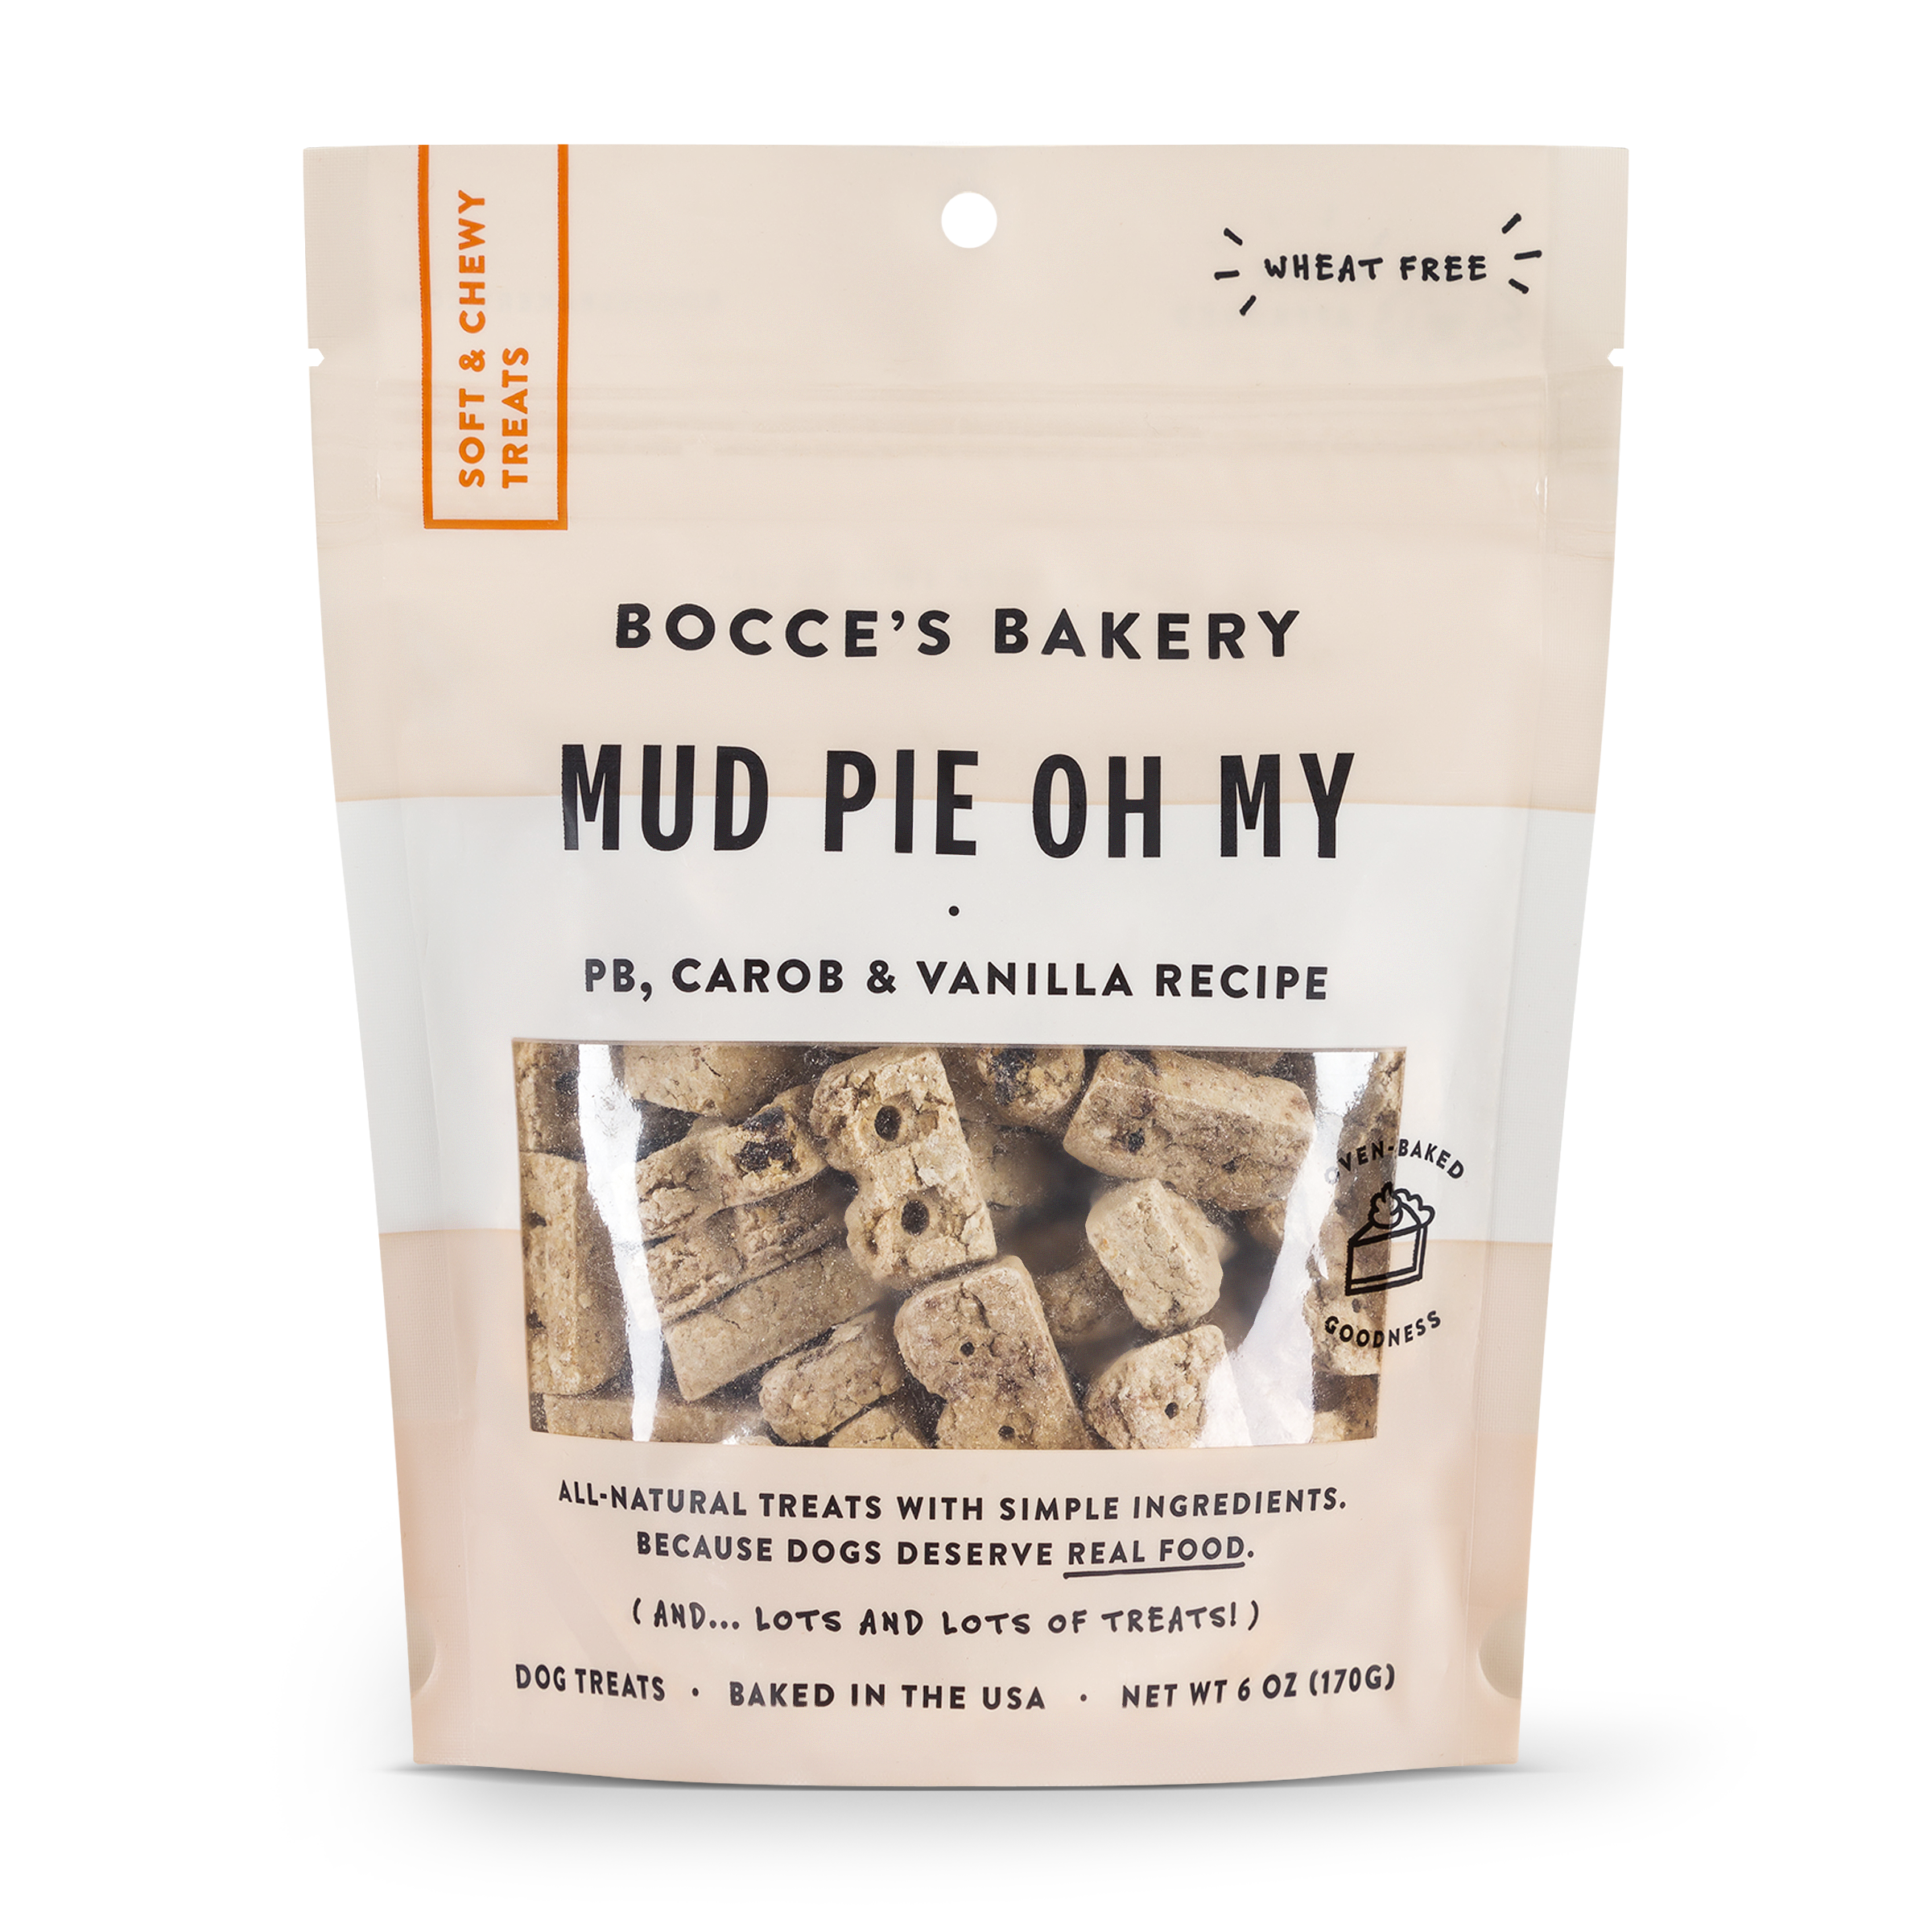 Bocce's Bakery Everyday Mud Pie Oh My Peanut Butter, Carob & Vanilla Recipe Soft & Chewy Dog Treats, 6-oz